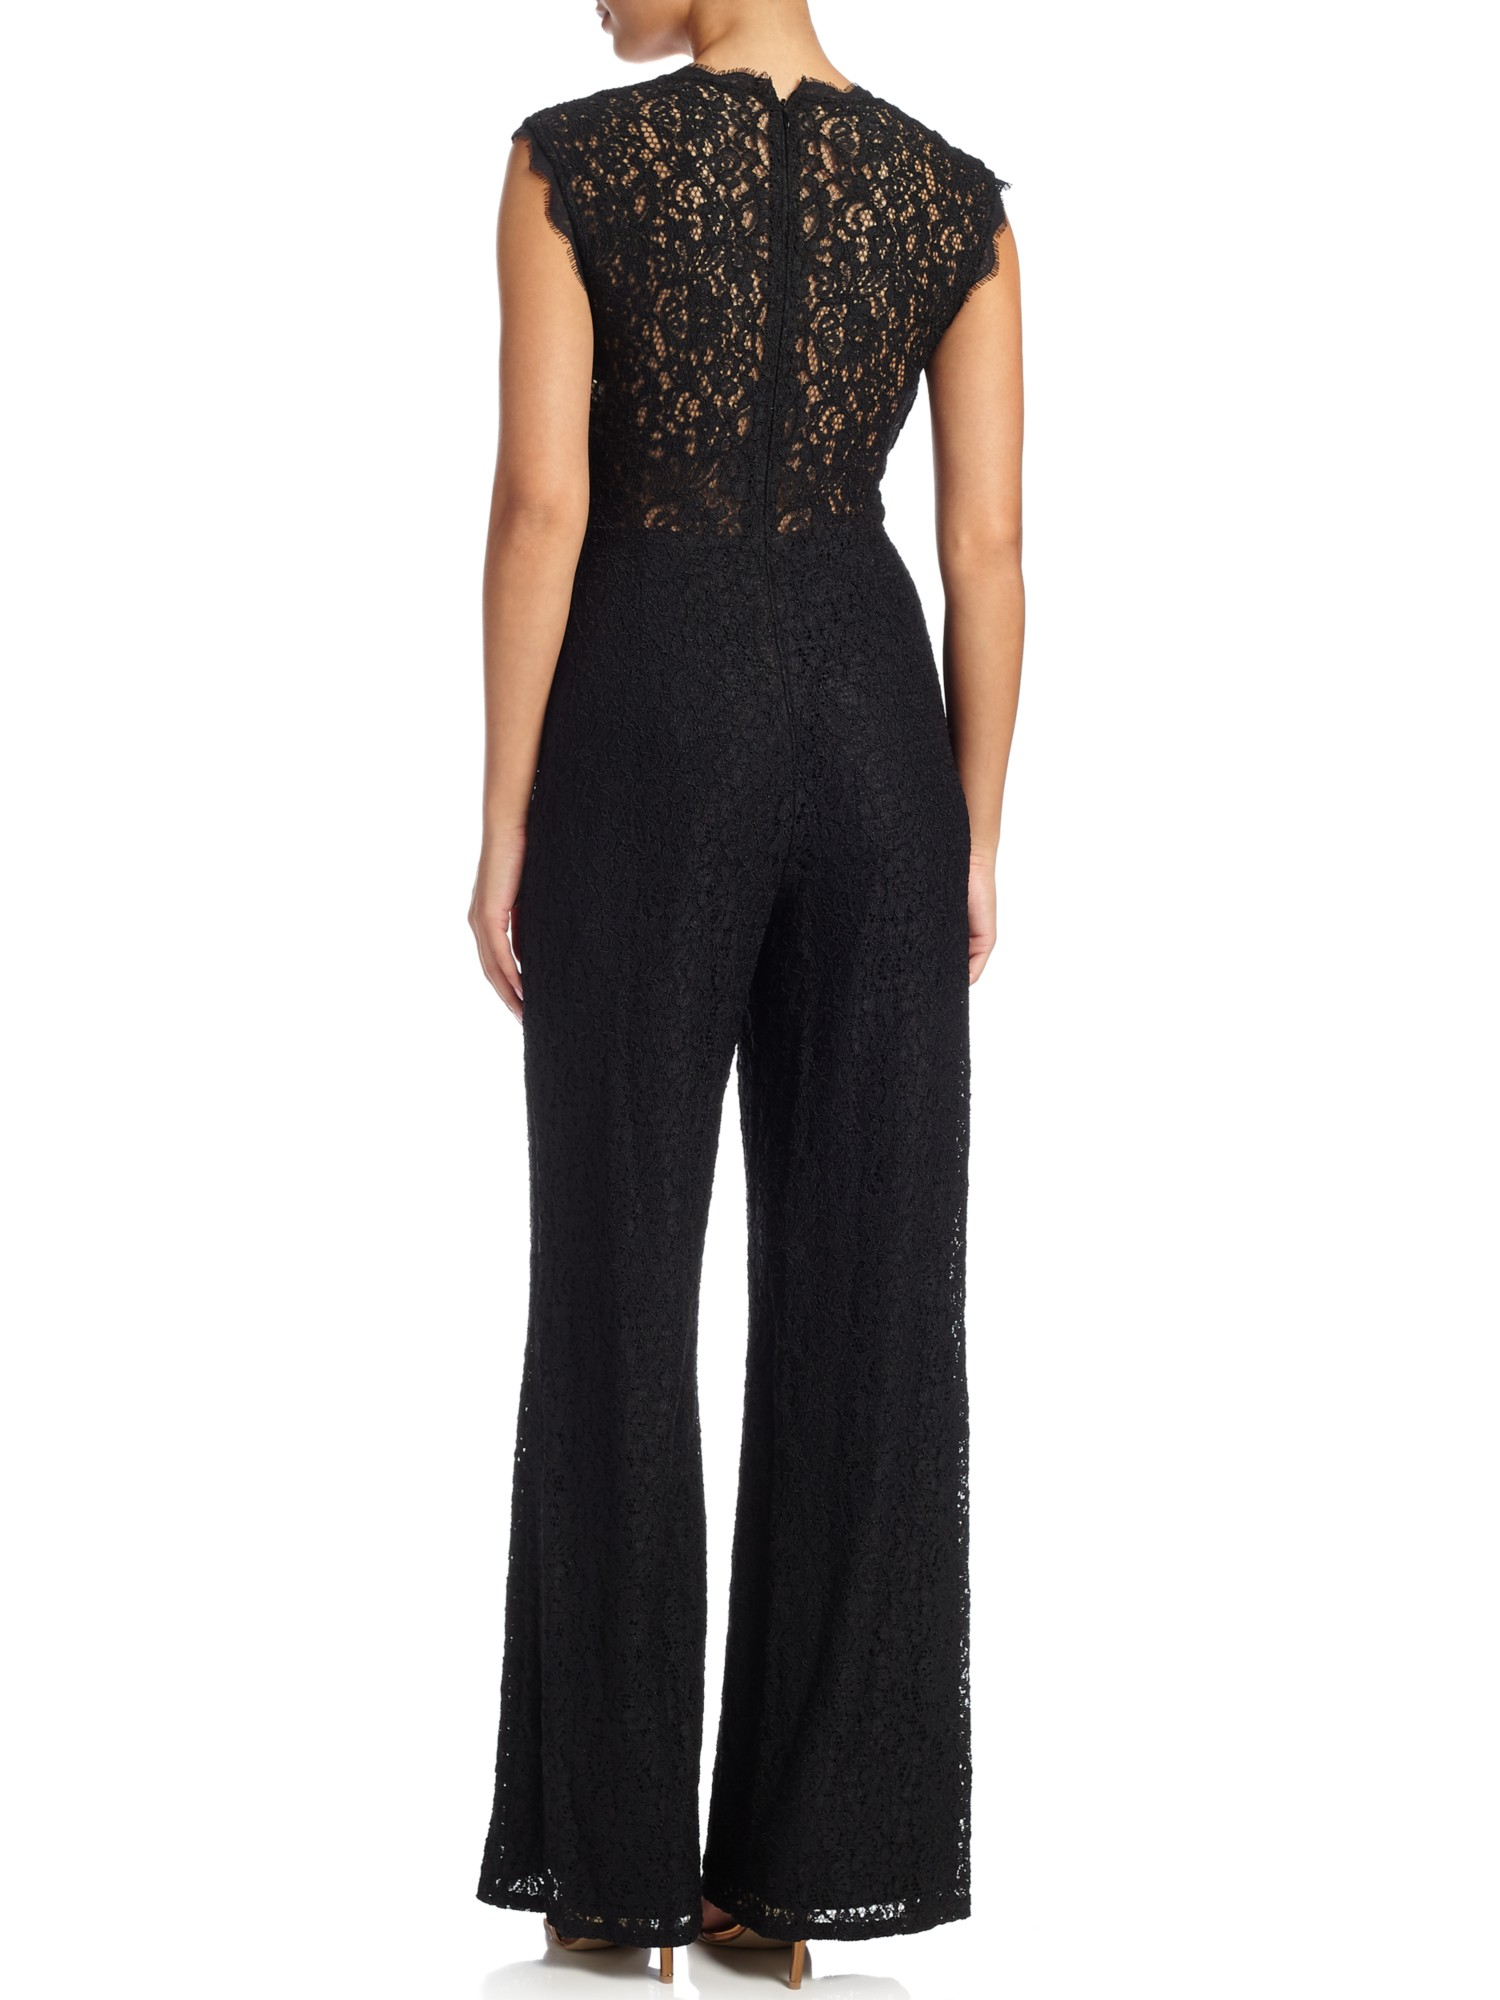 07ab09aa5b45 Adrianna Papell Sleeveless Lace Wide Leg Jumpsuit in Black - Lyst